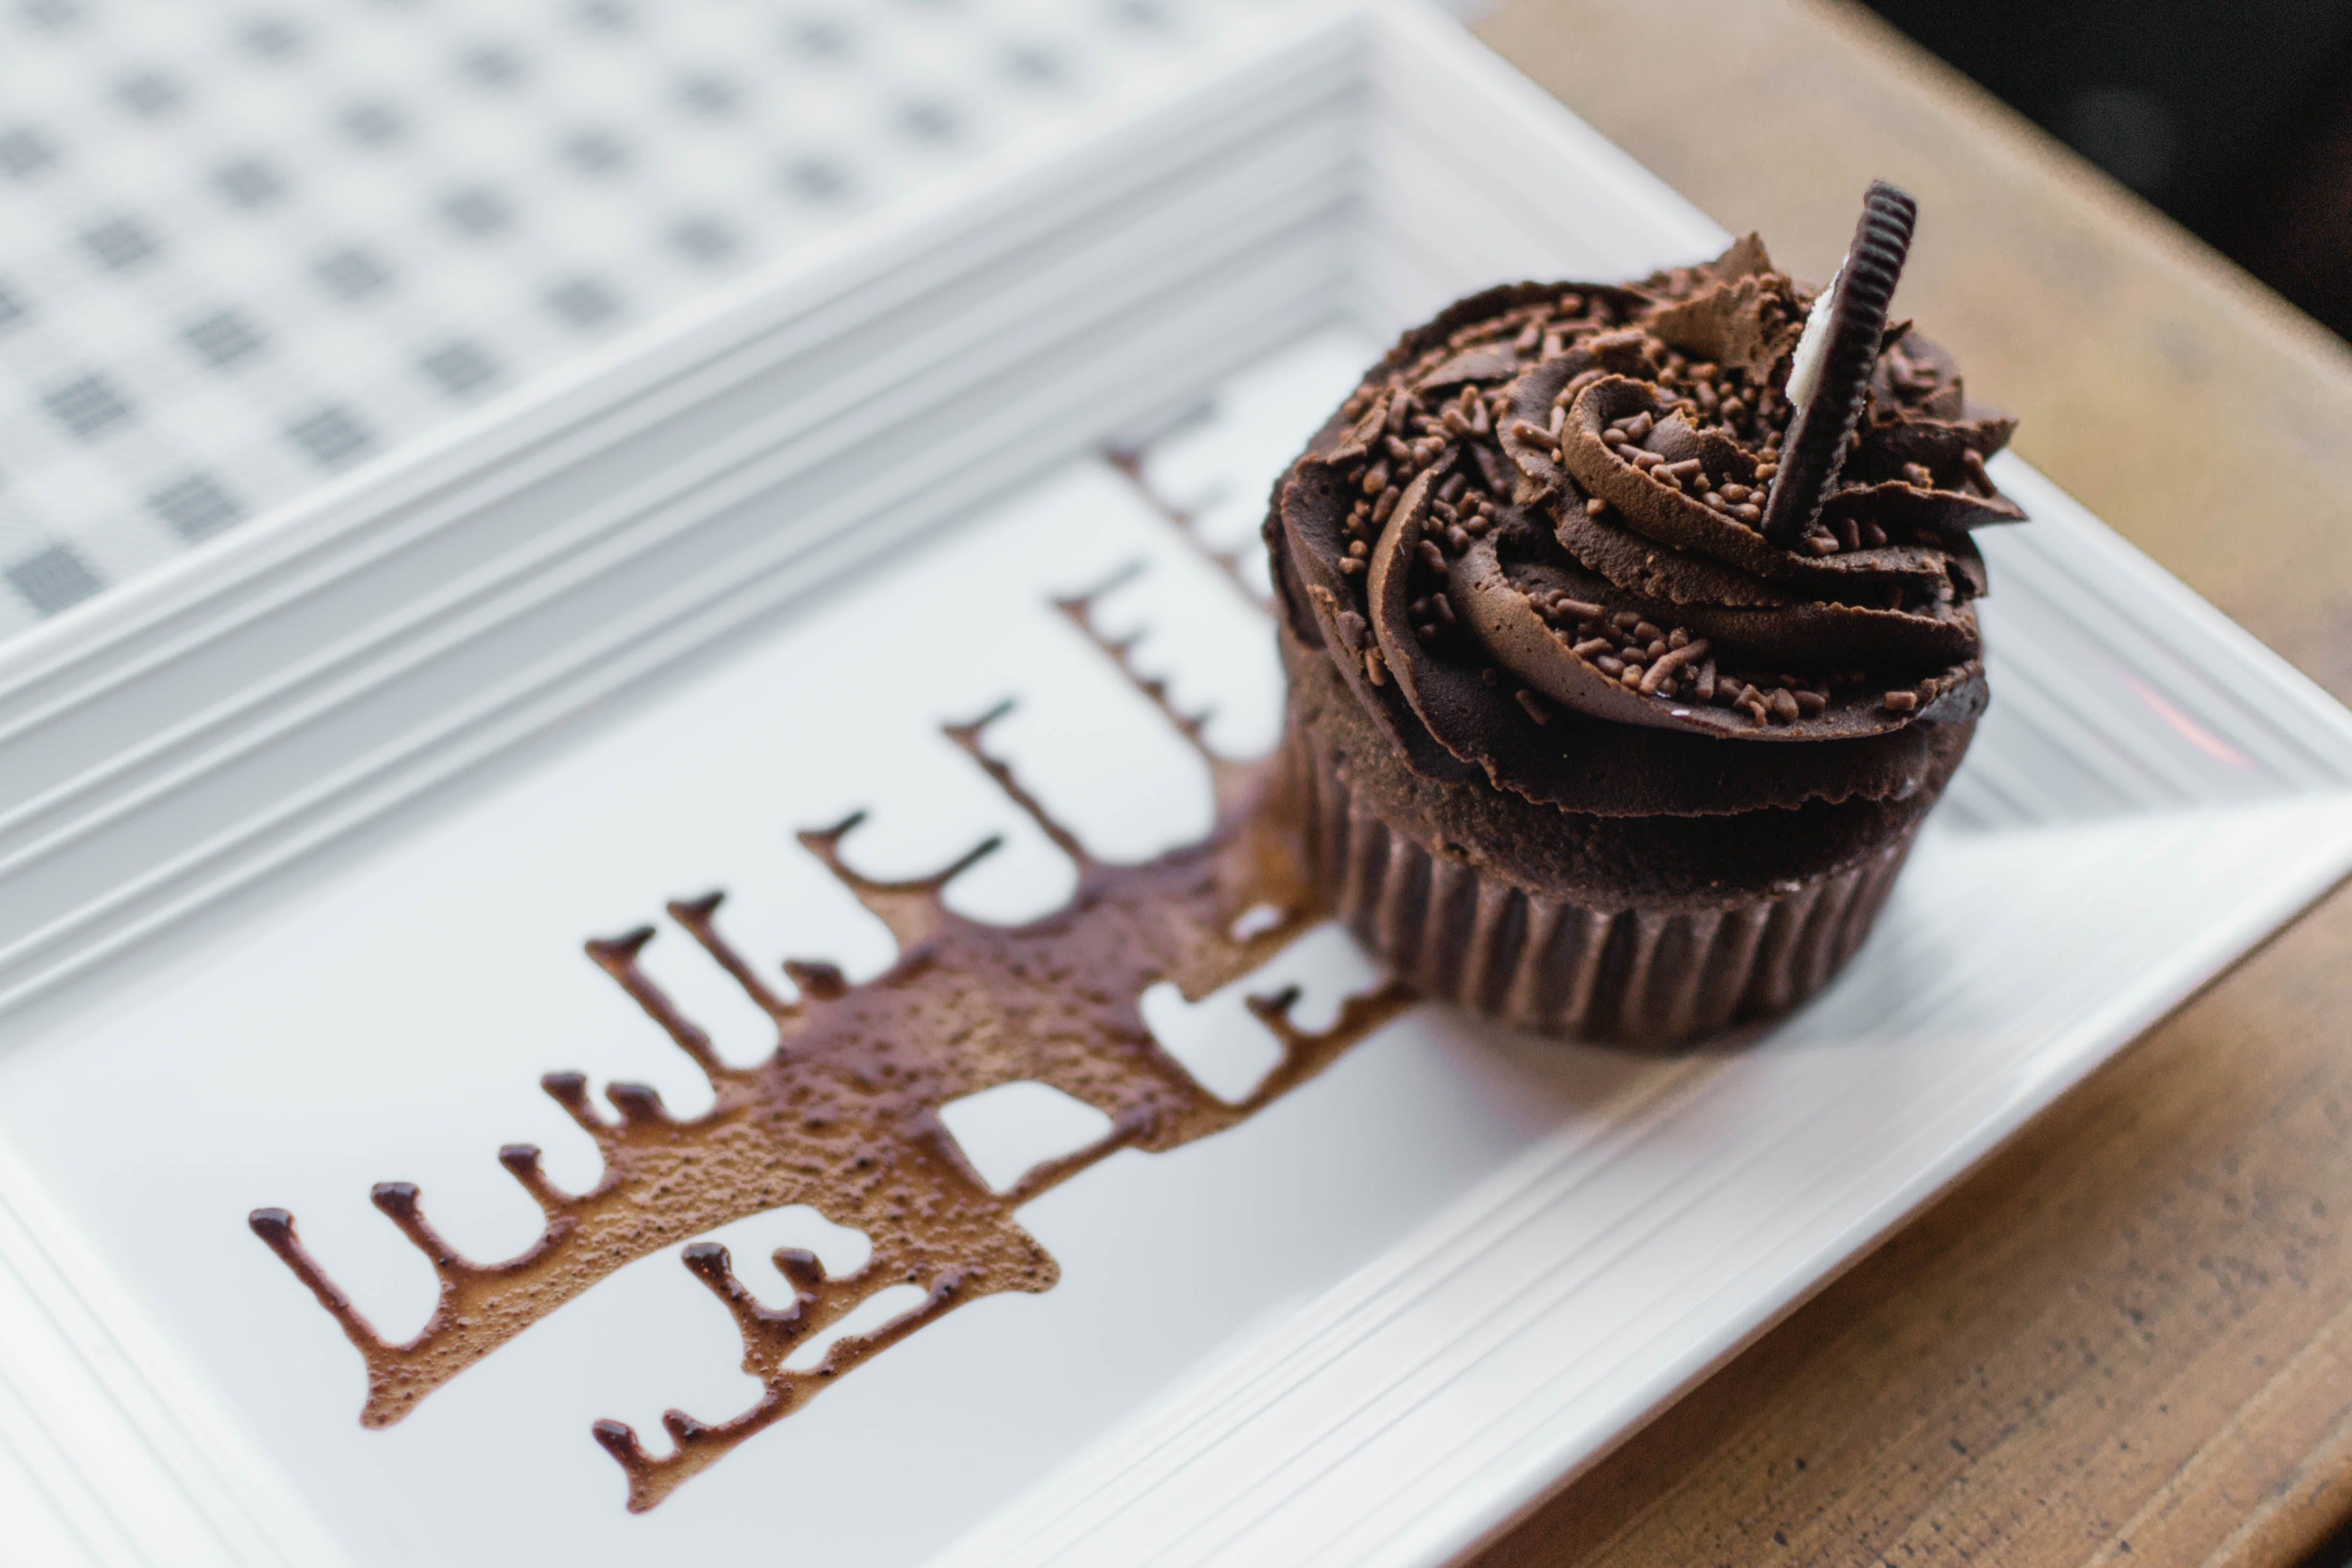 Chocolate Cupcake on Rectangular White Ceramic Plate